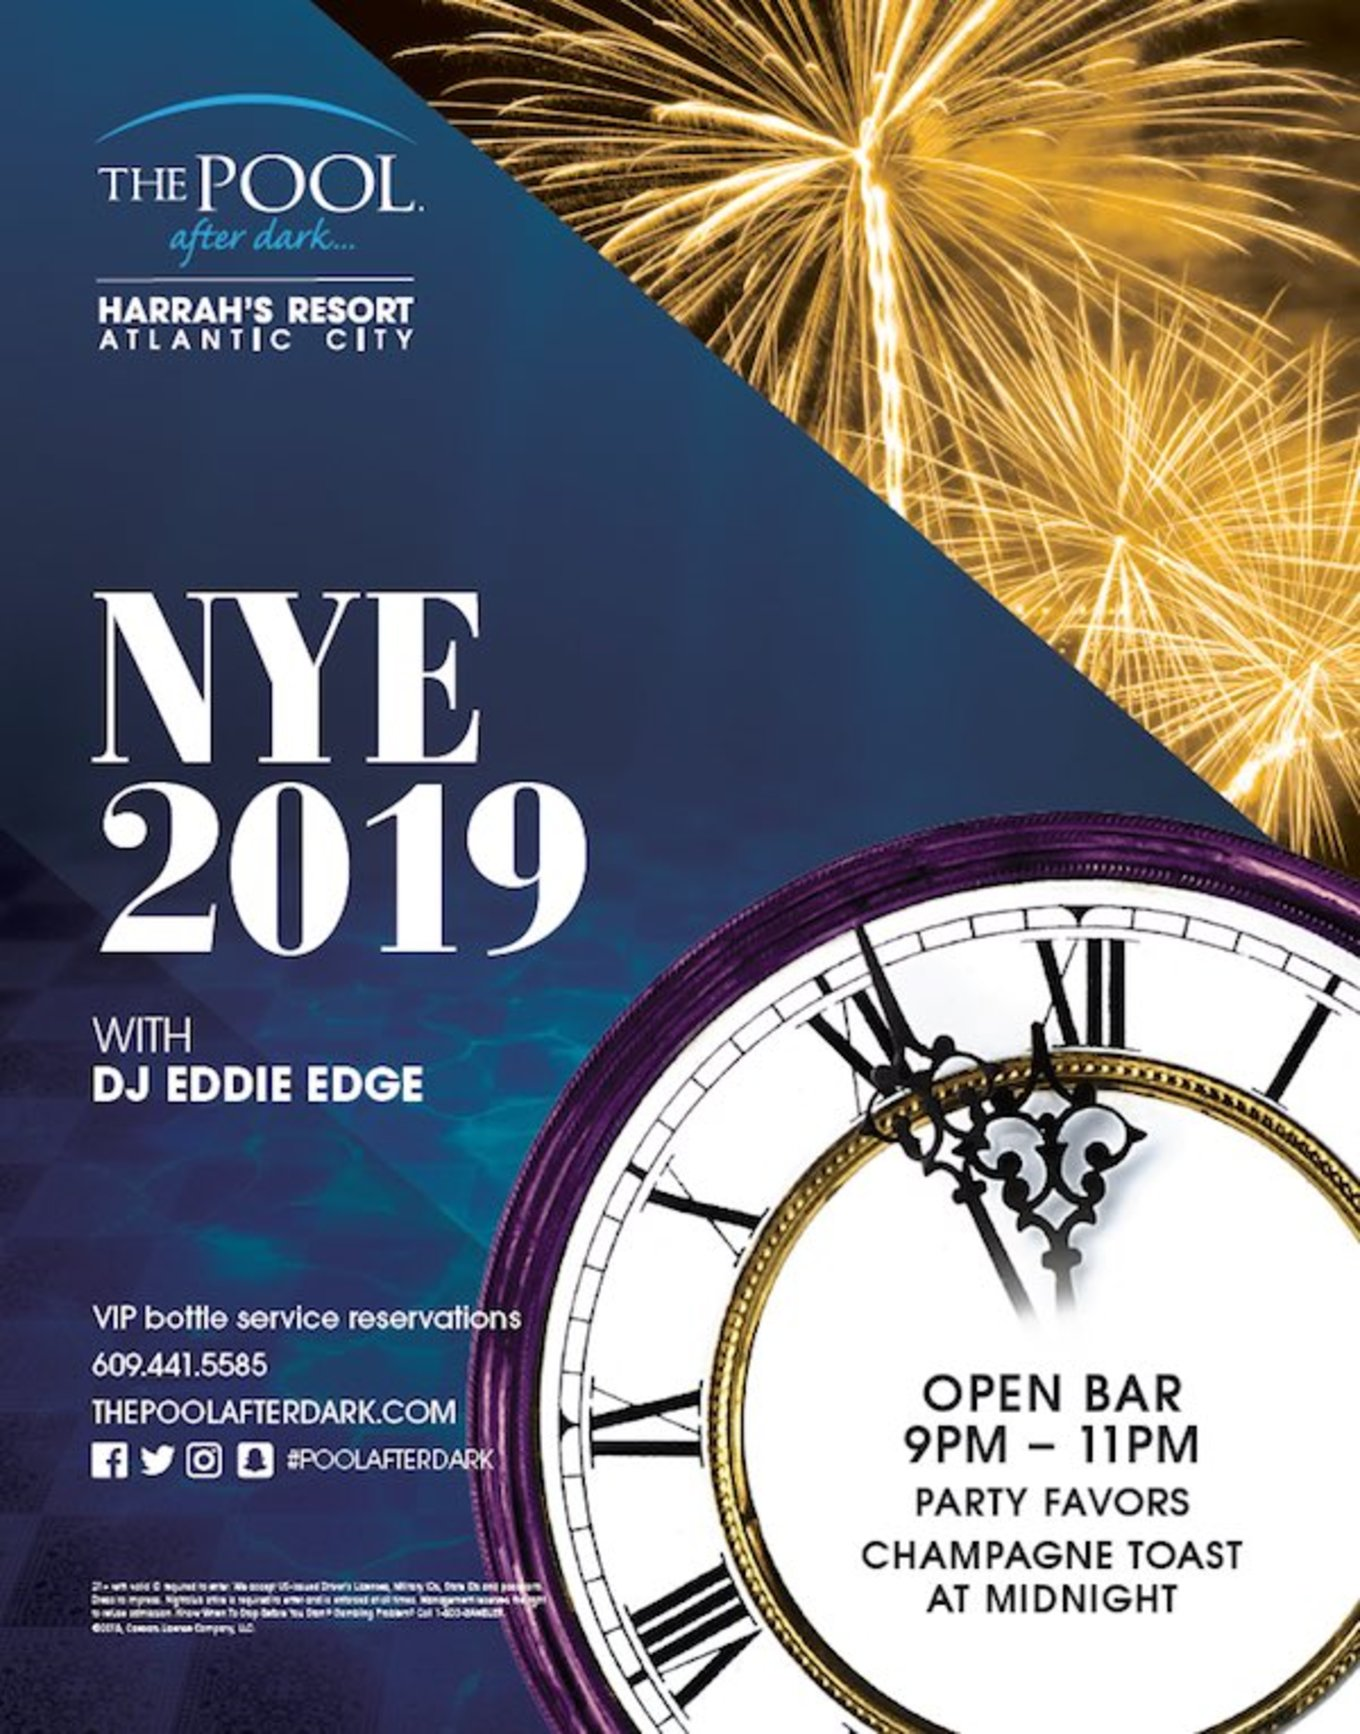 New Years Eve 2019 - Tickets - The Pool After Dark, Atlantic City, NJ - December 31, 2018